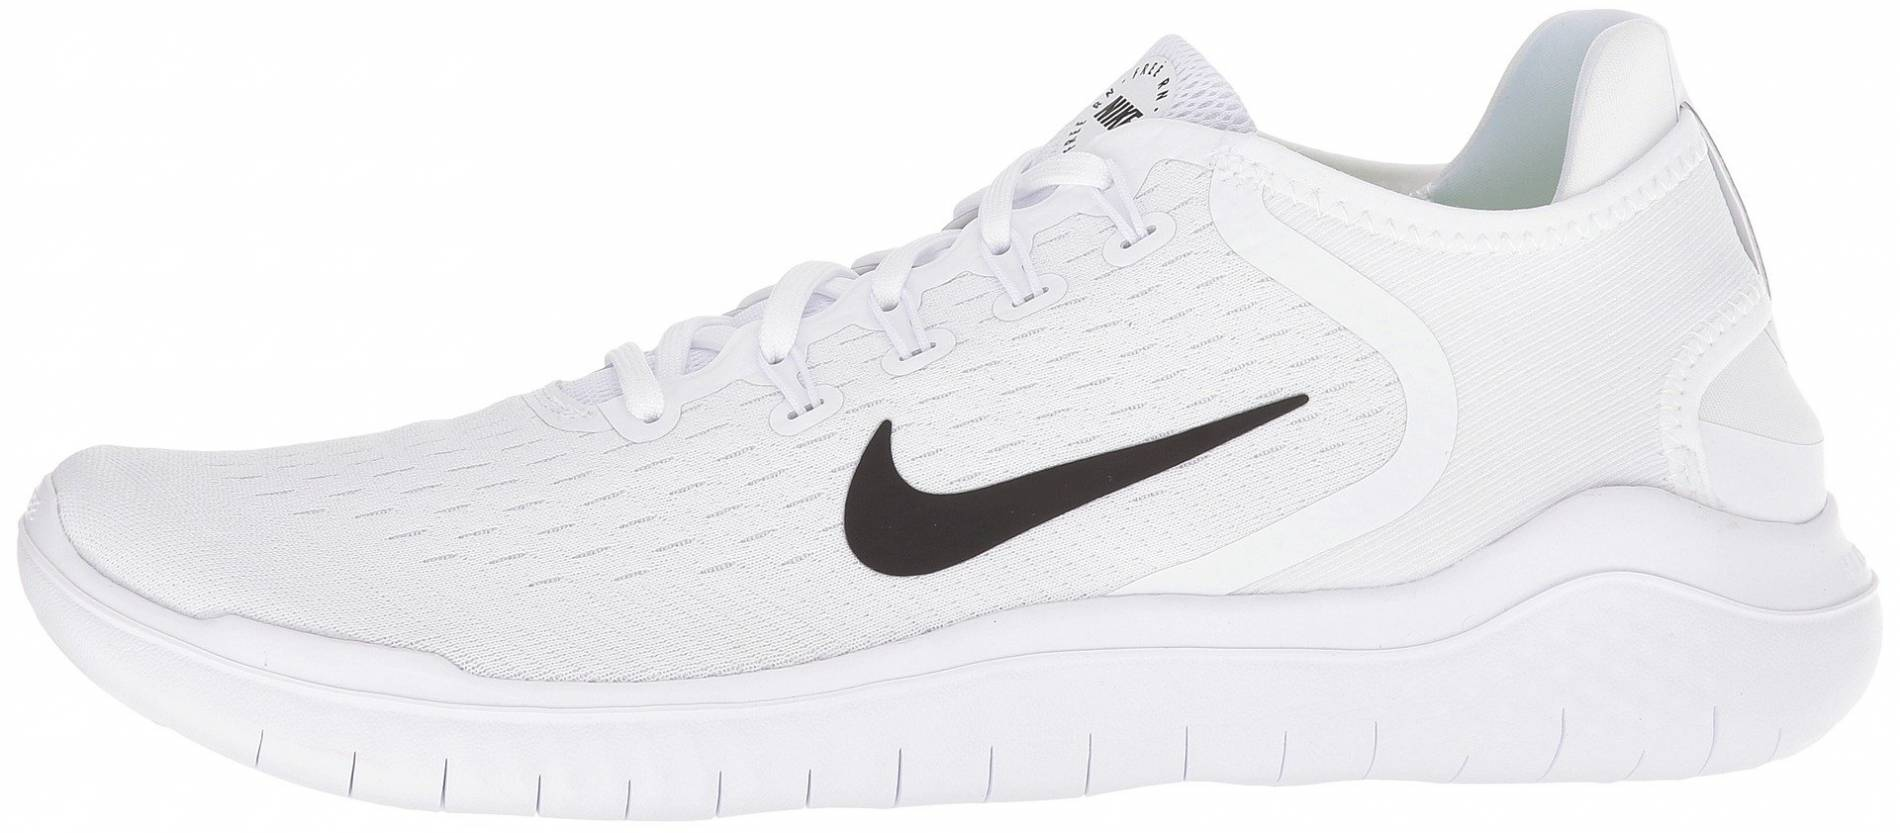 Save 40% on White Nike Running Shoes (55 Models in Stock ...